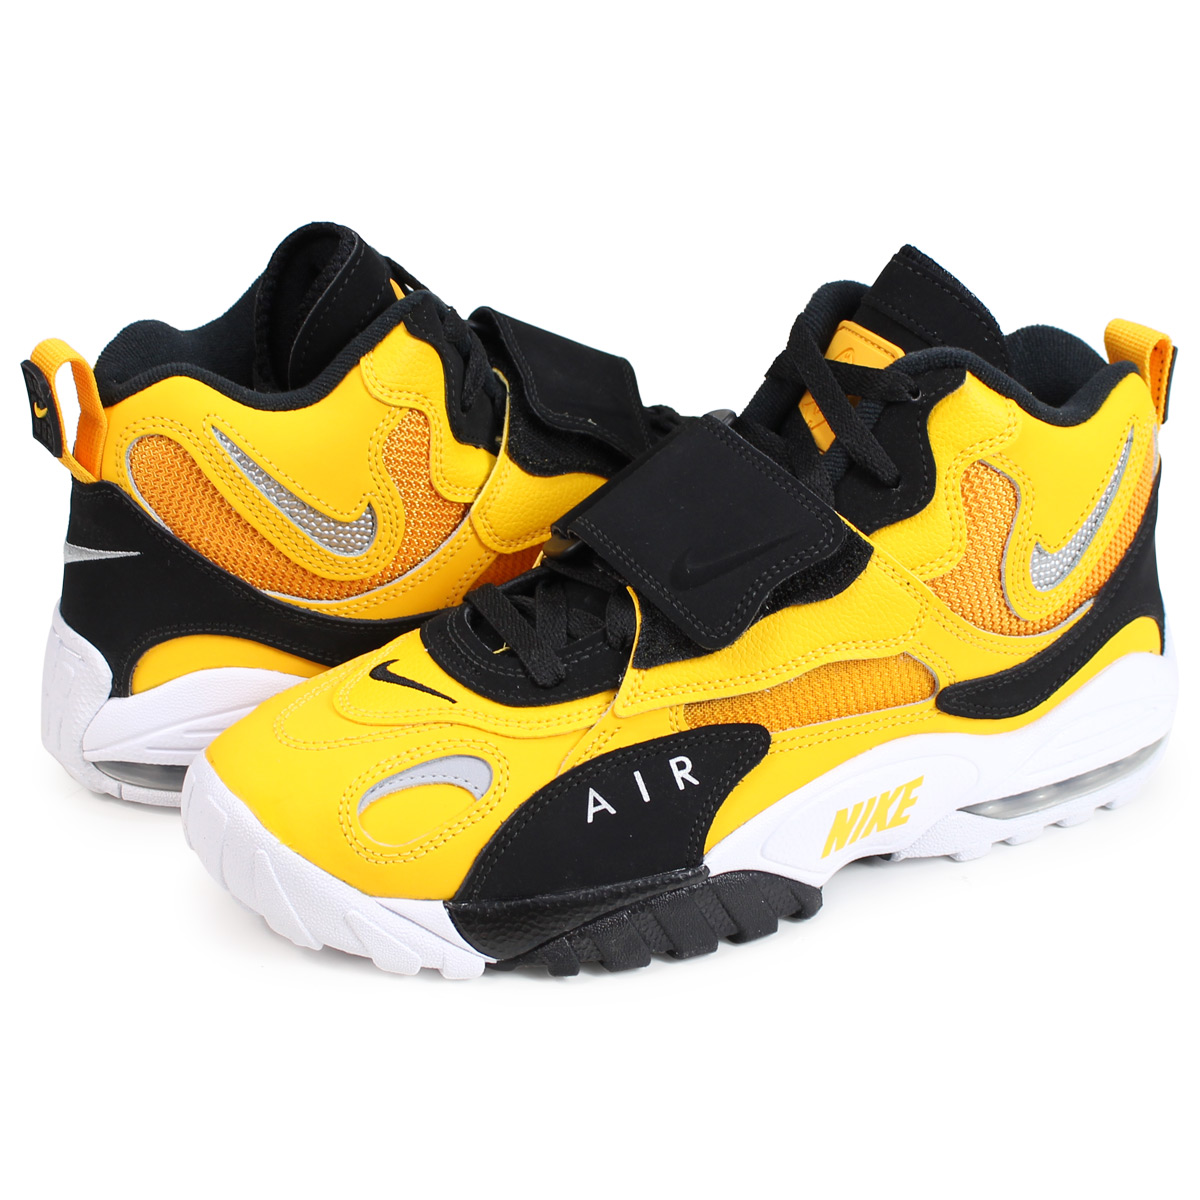 the latest 54cf0 0322e Nike NIKE Air Max sneakers men AIR MAX SPEED TURF gold BV1165-700  4 24  reentry load